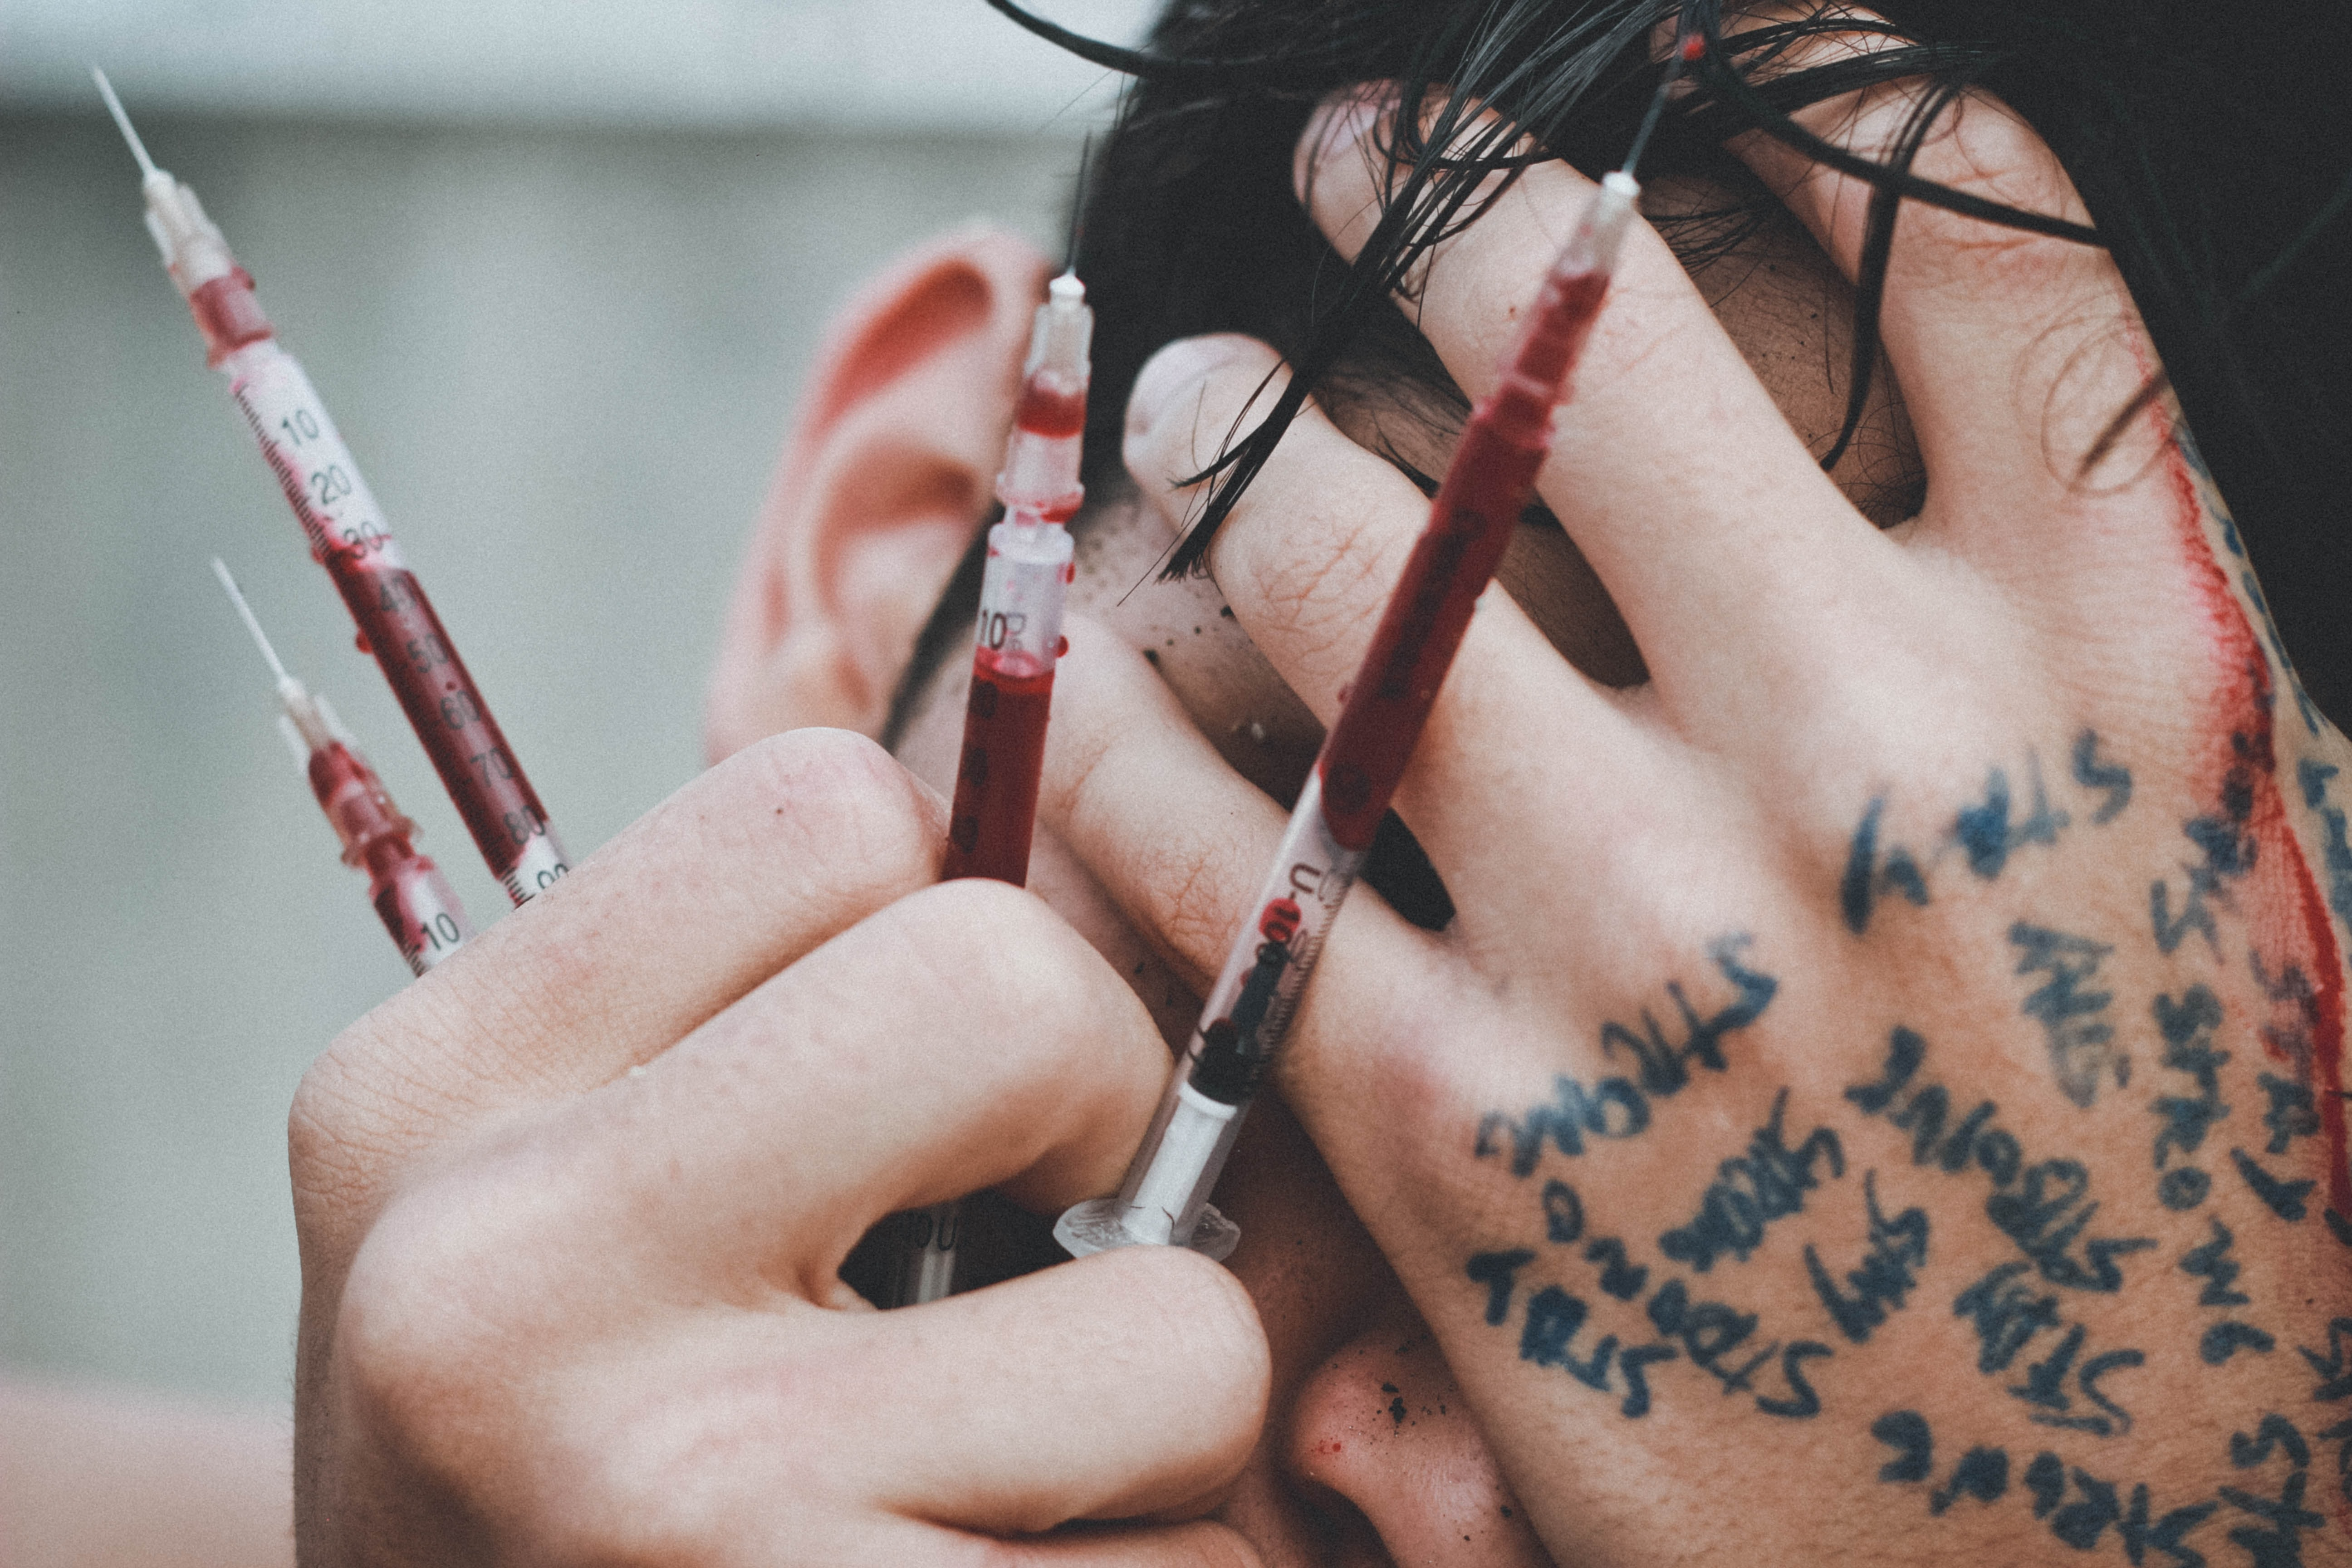 man holding syringes of red stain